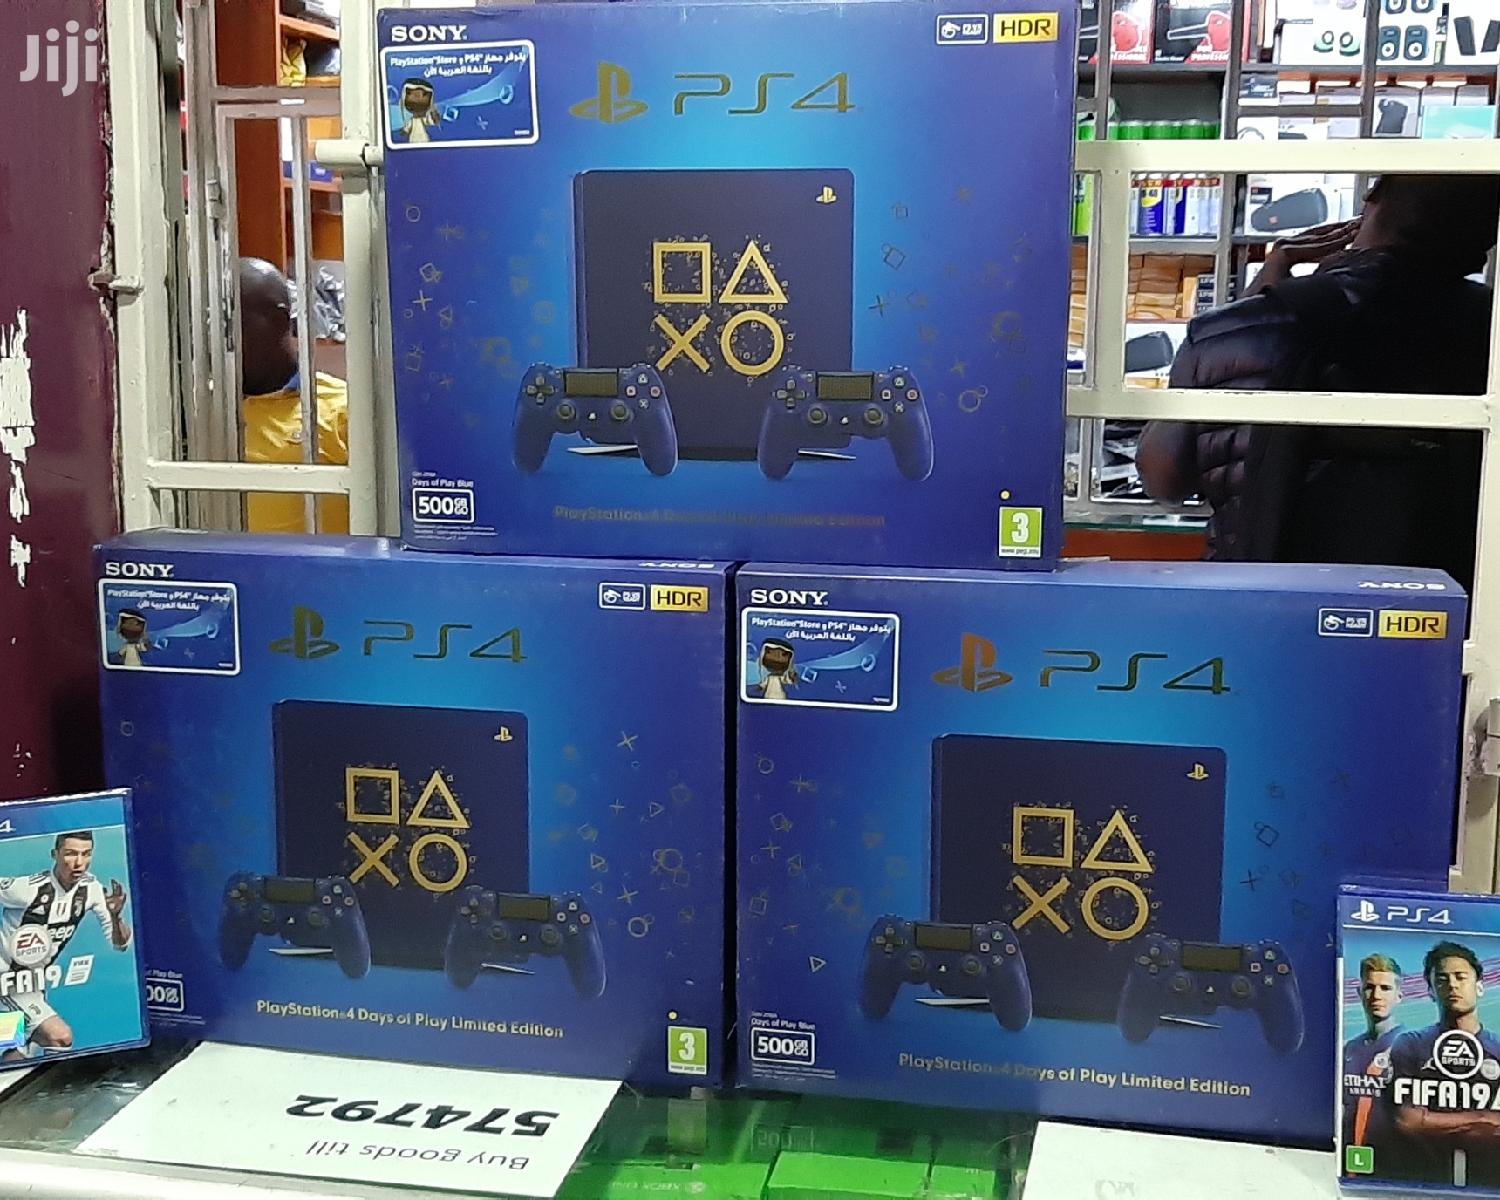 Ps4 Slim 500GB Days of Play Limited Edition With Two Controllers